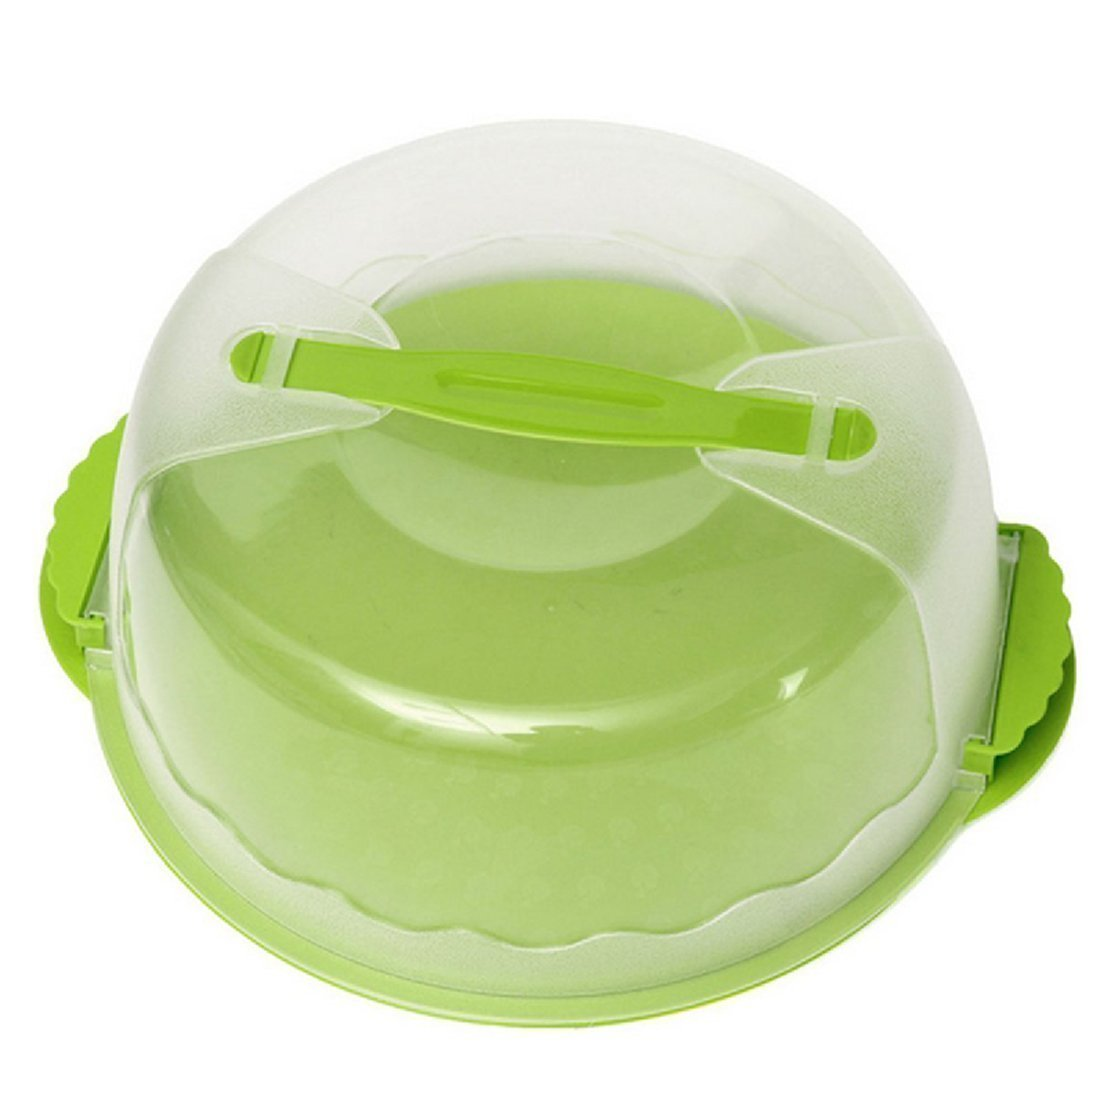 Cake Caddy, 10Inch Portable Round Cake Carriers Locking Cake Caddy Storage Container Server with Handle (Green)